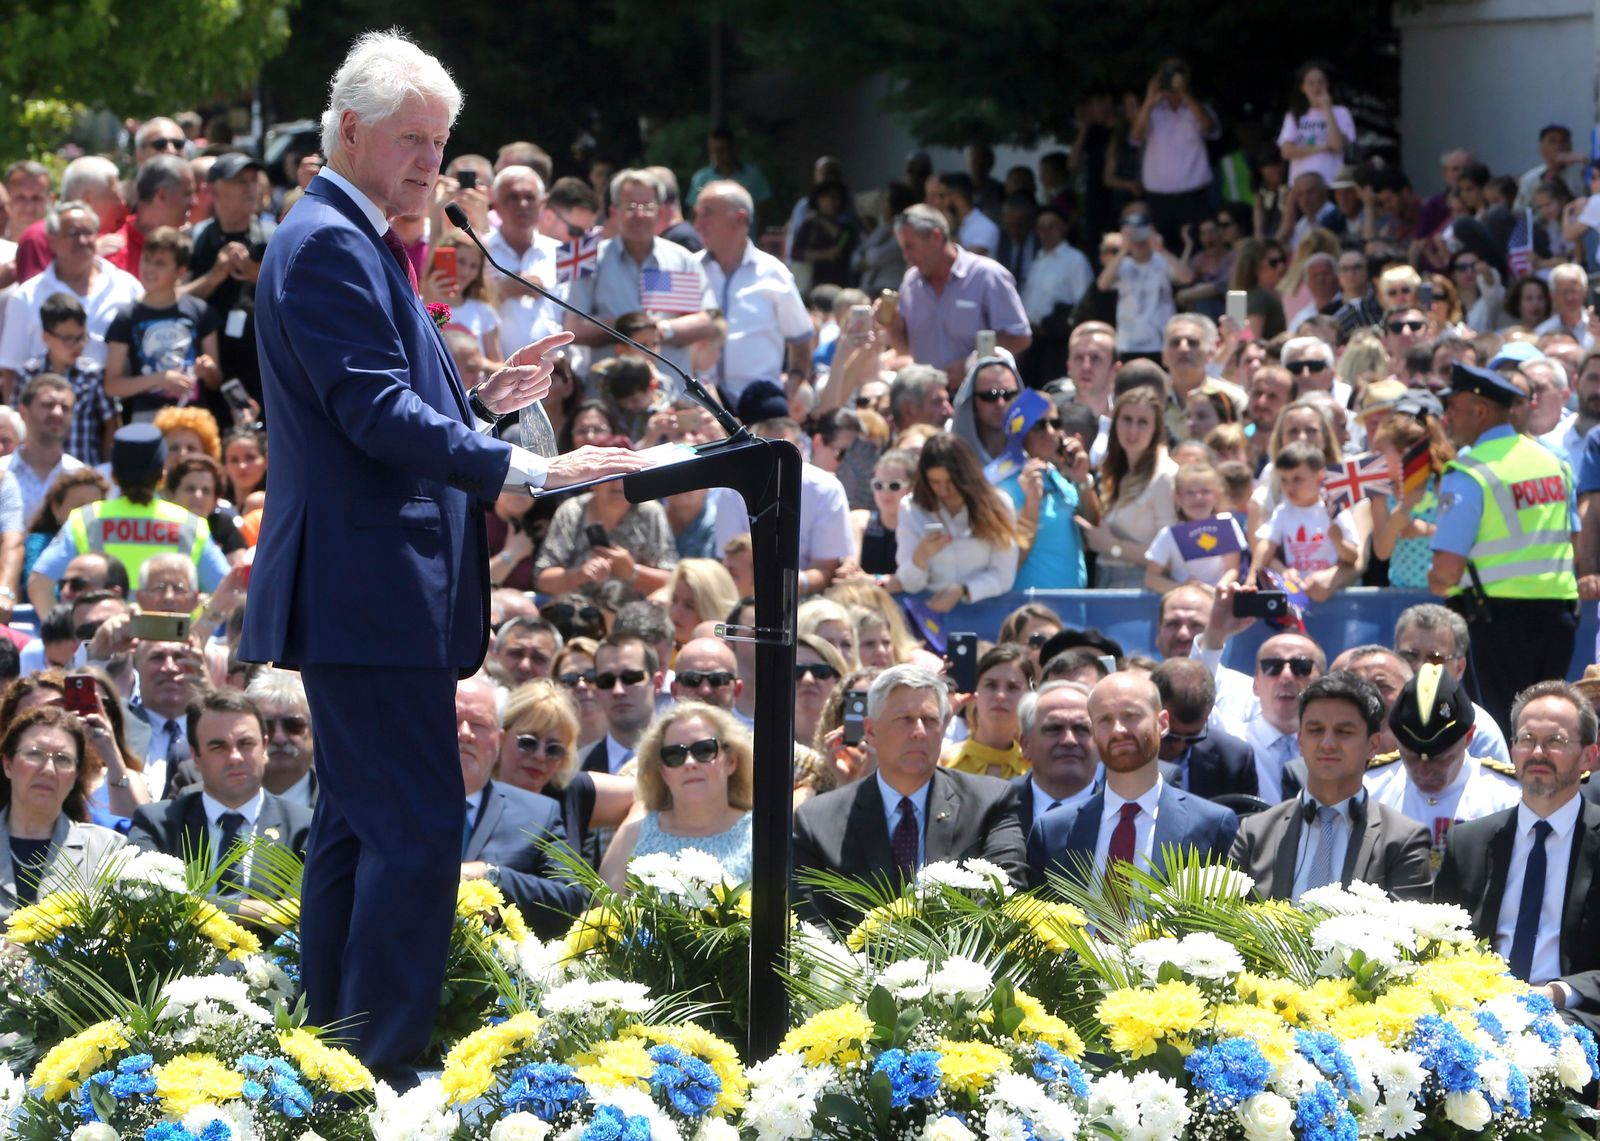 Former U.S. President Bill Clinton speaks during anniversary celebrations in the capital Pristina, Kosovo, Wednesday, June 12, 2019. It's exactly 20 years since NATO forces set foot in the former Yugoslav province, after an allied bombing campaign ended Serbia's bloody crackdown on an insurrection by the majority ethnic Albanian population in Kosovo _ revered by Serbs as their historic and religious heartland. (AP Photo/Visar Kryeziu)